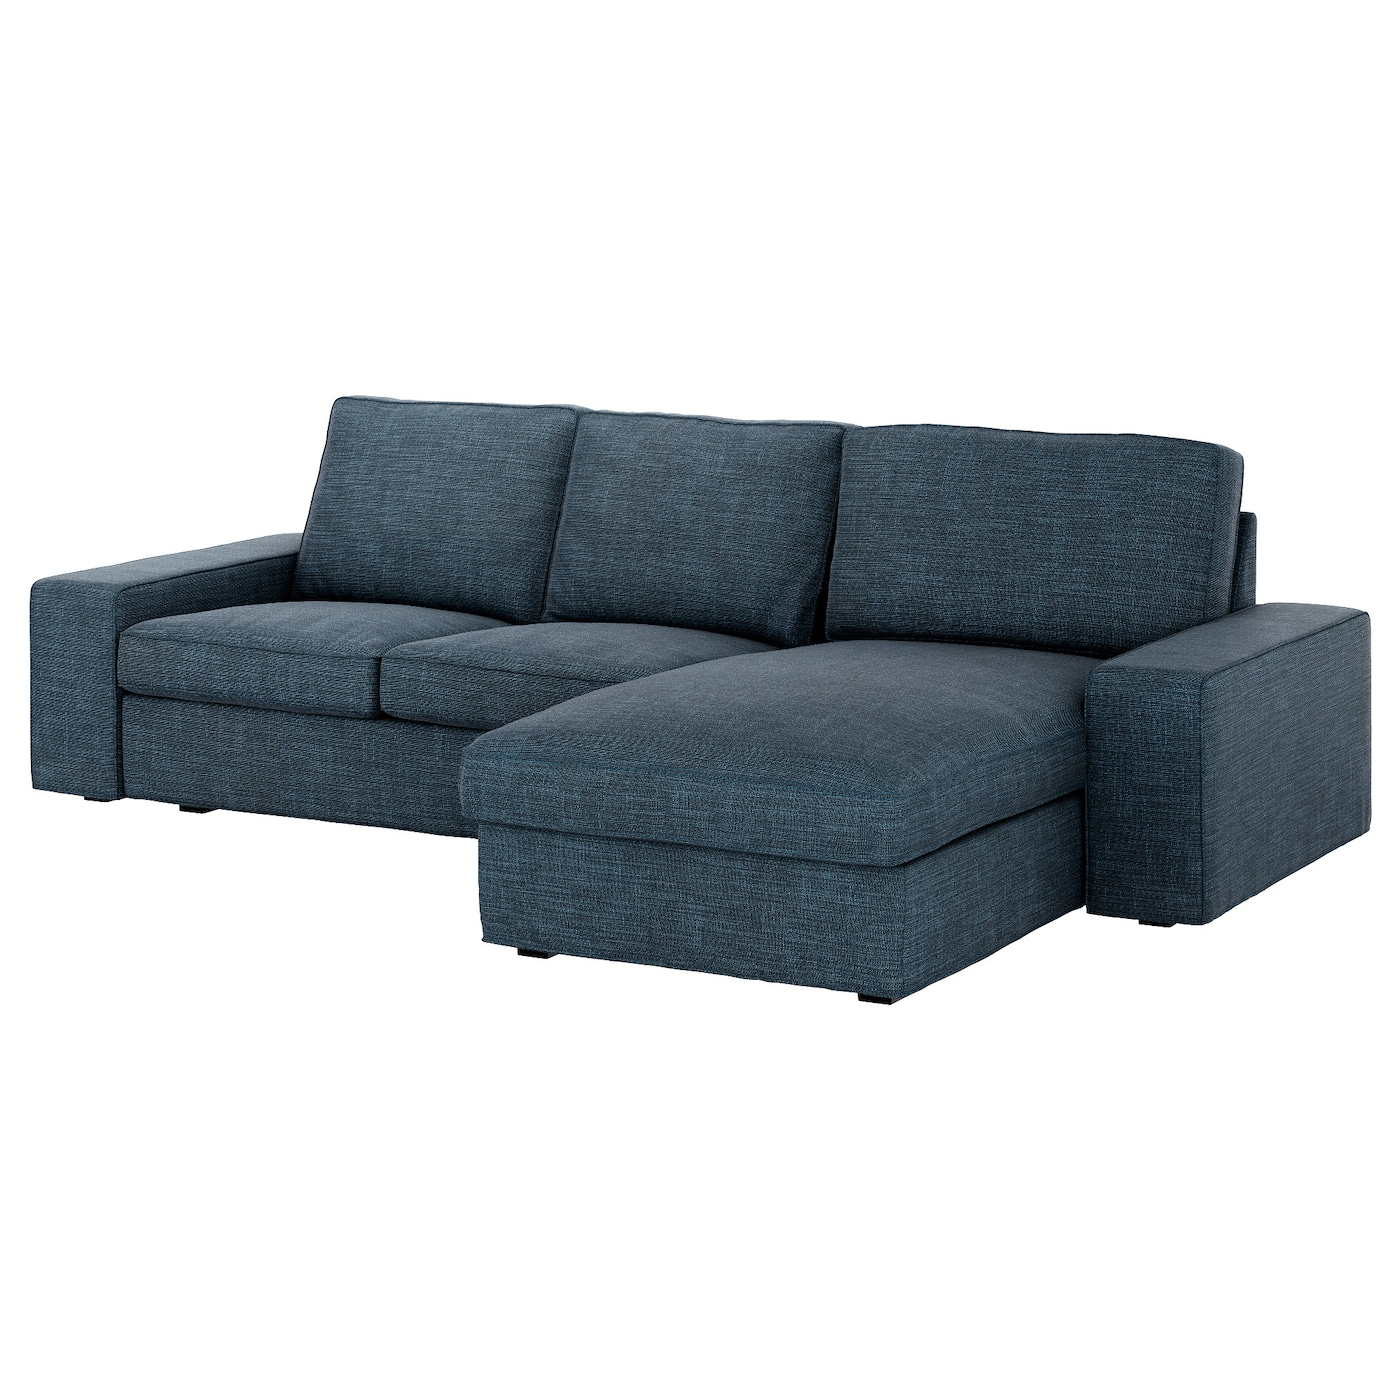 Kivik two seat sofa and chaise longue hillared dark blue for 2 seater chaise sofa